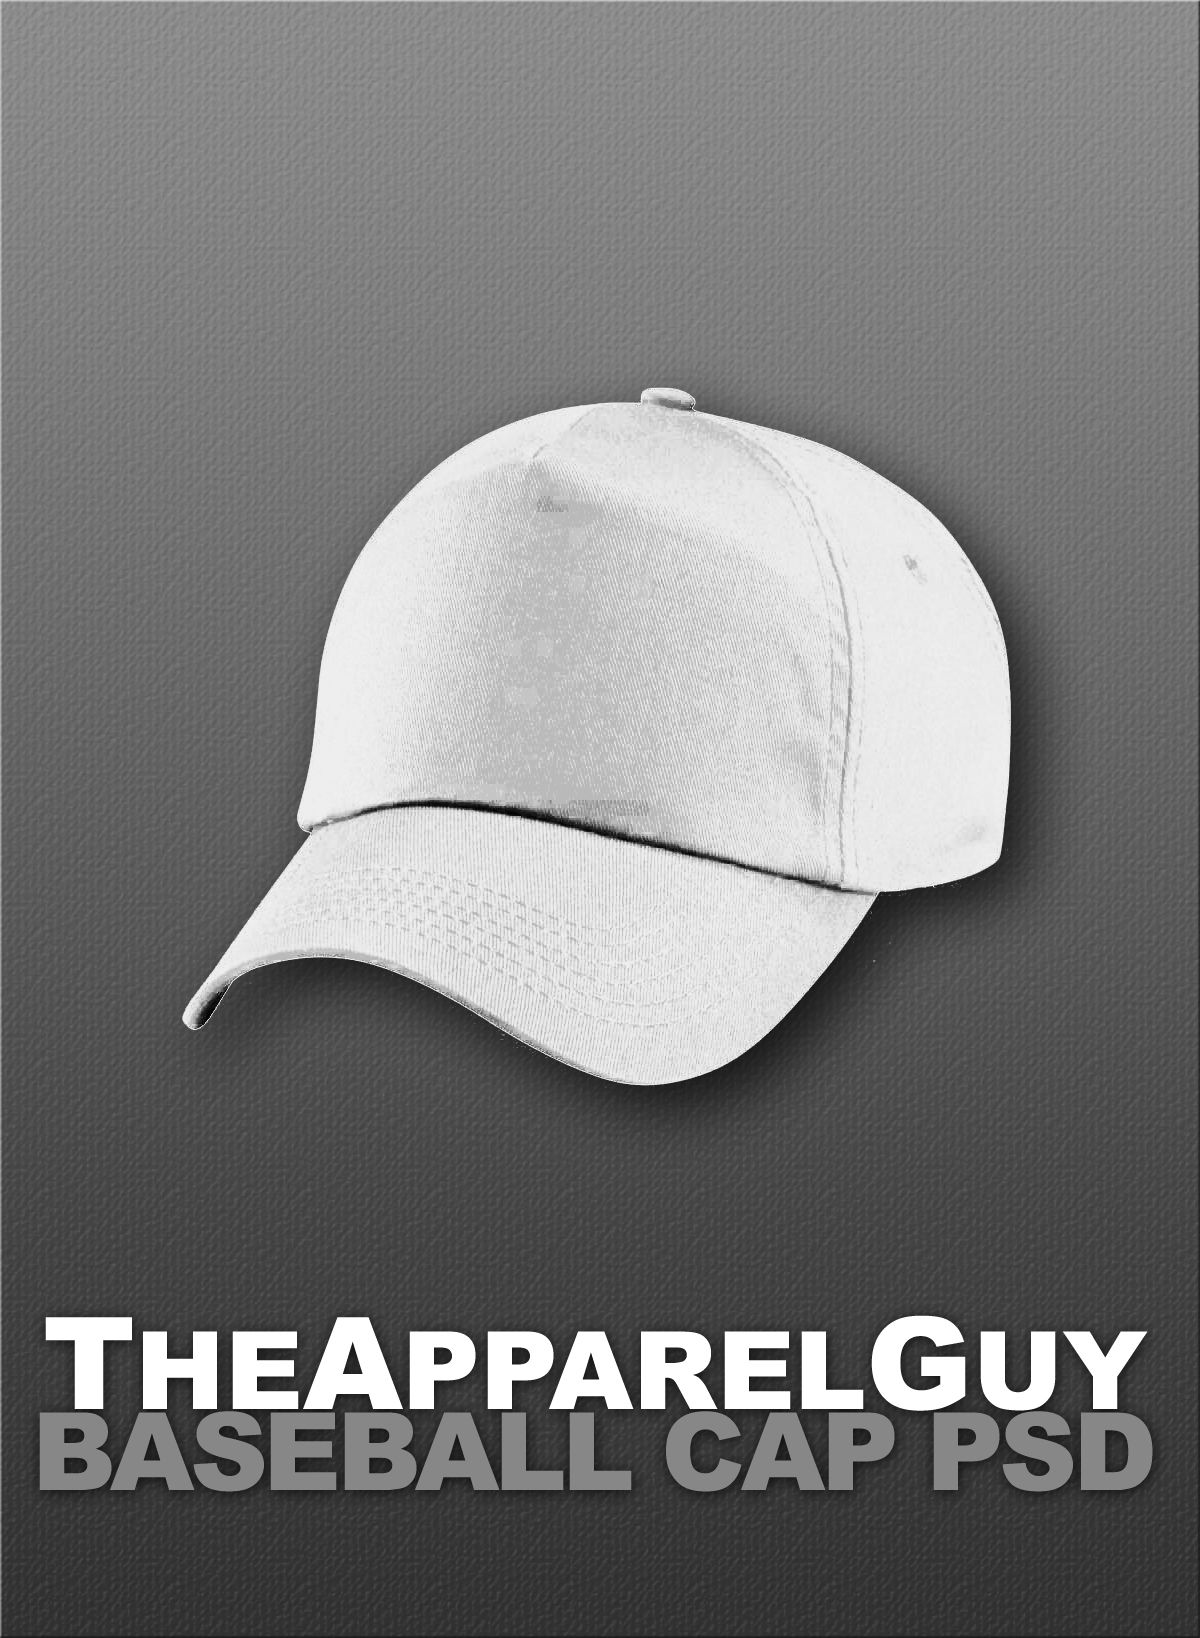 Baseball Cap Psd By Theapparelguy Deviantart Com On Deviantart Baseball Card Template Baseball Cap Baseball